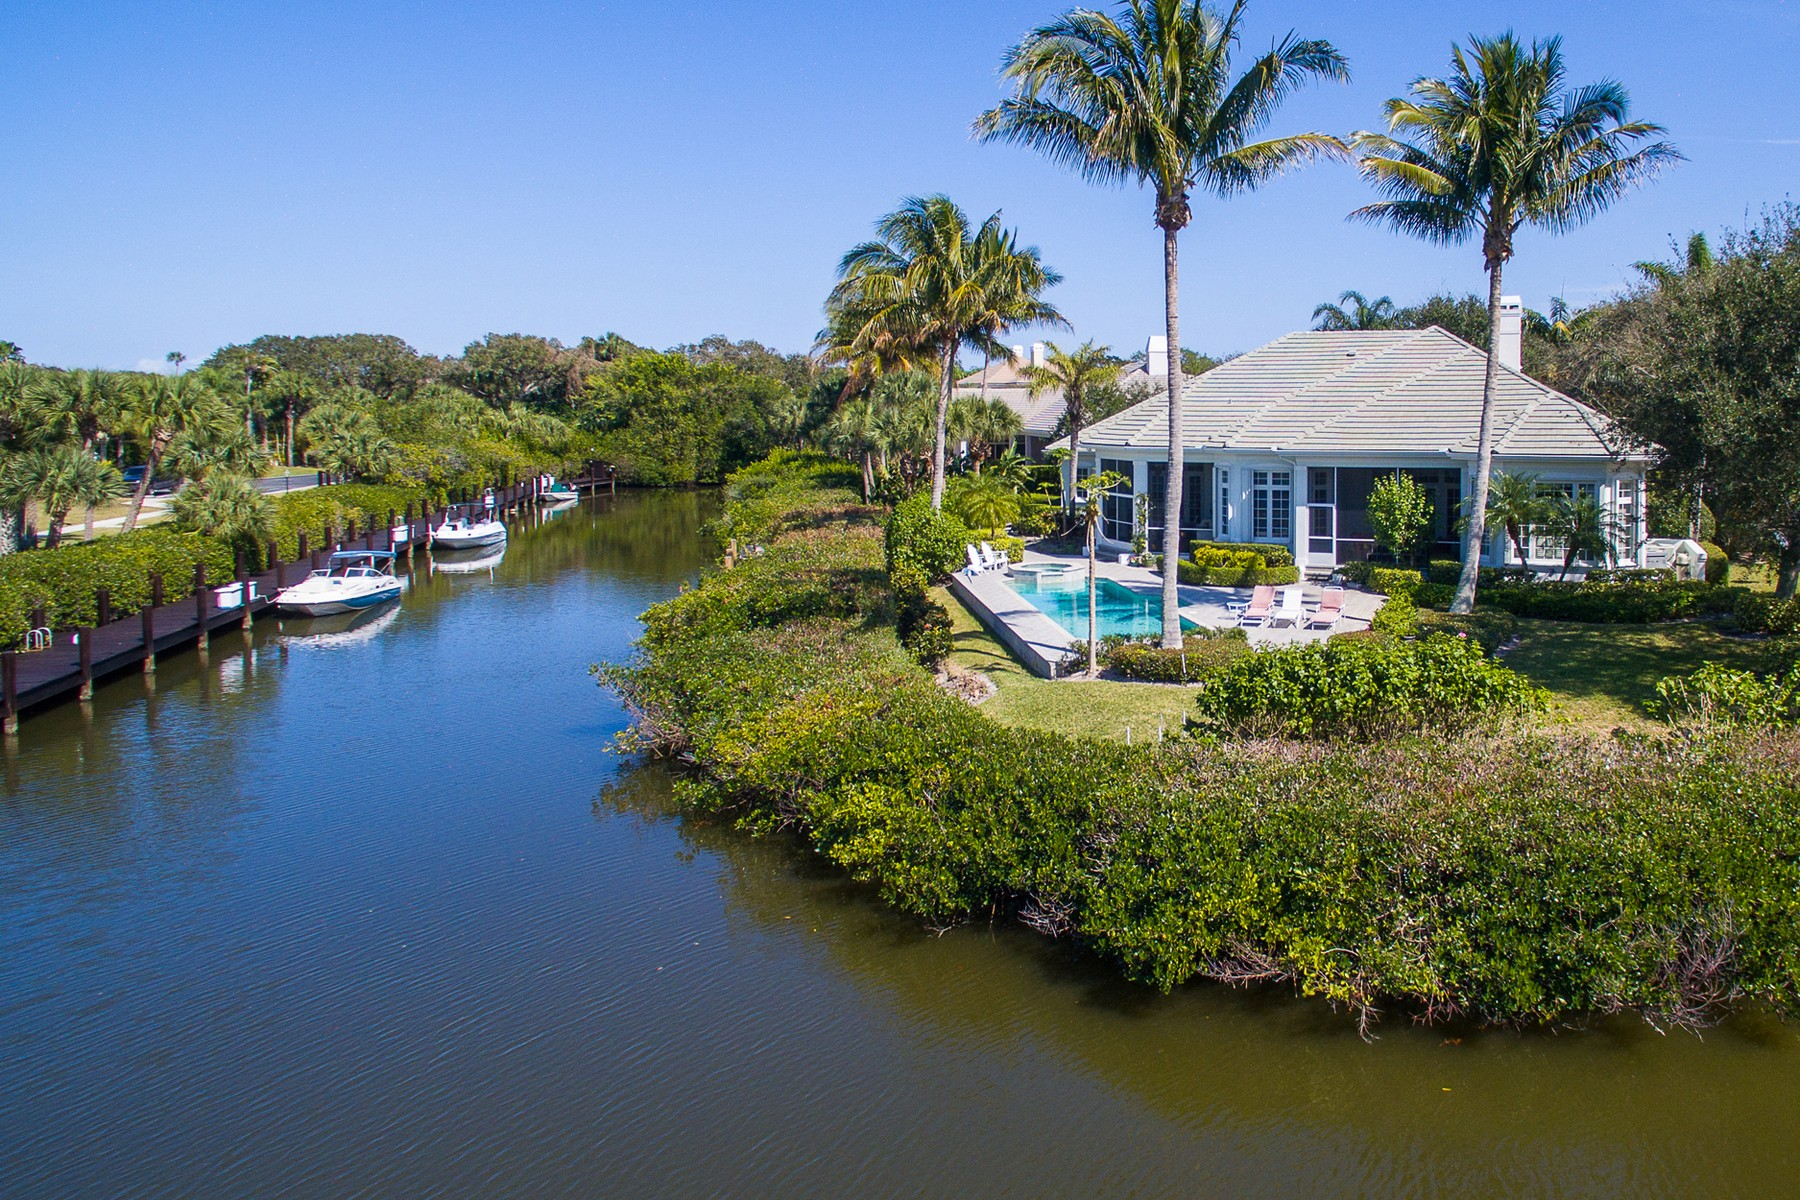 Villa per Vendita alle ore Riverfront Showplace in The Estuary 125 Rivermist Way Vero Beach, Florida, 32963 Stati Uniti